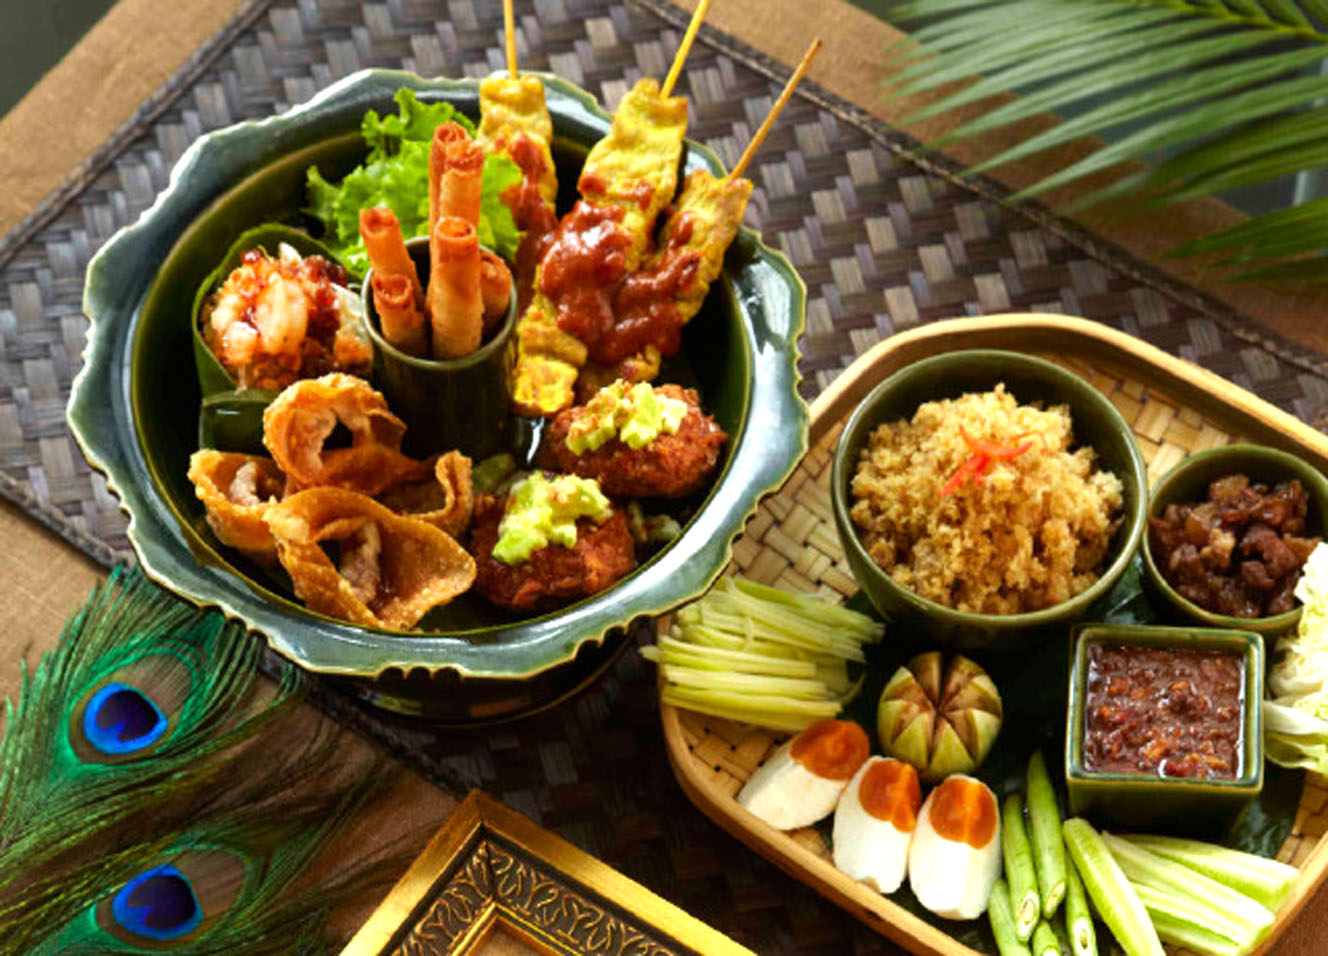 Casino espanol de cebu inc for Authentic thai cuisine